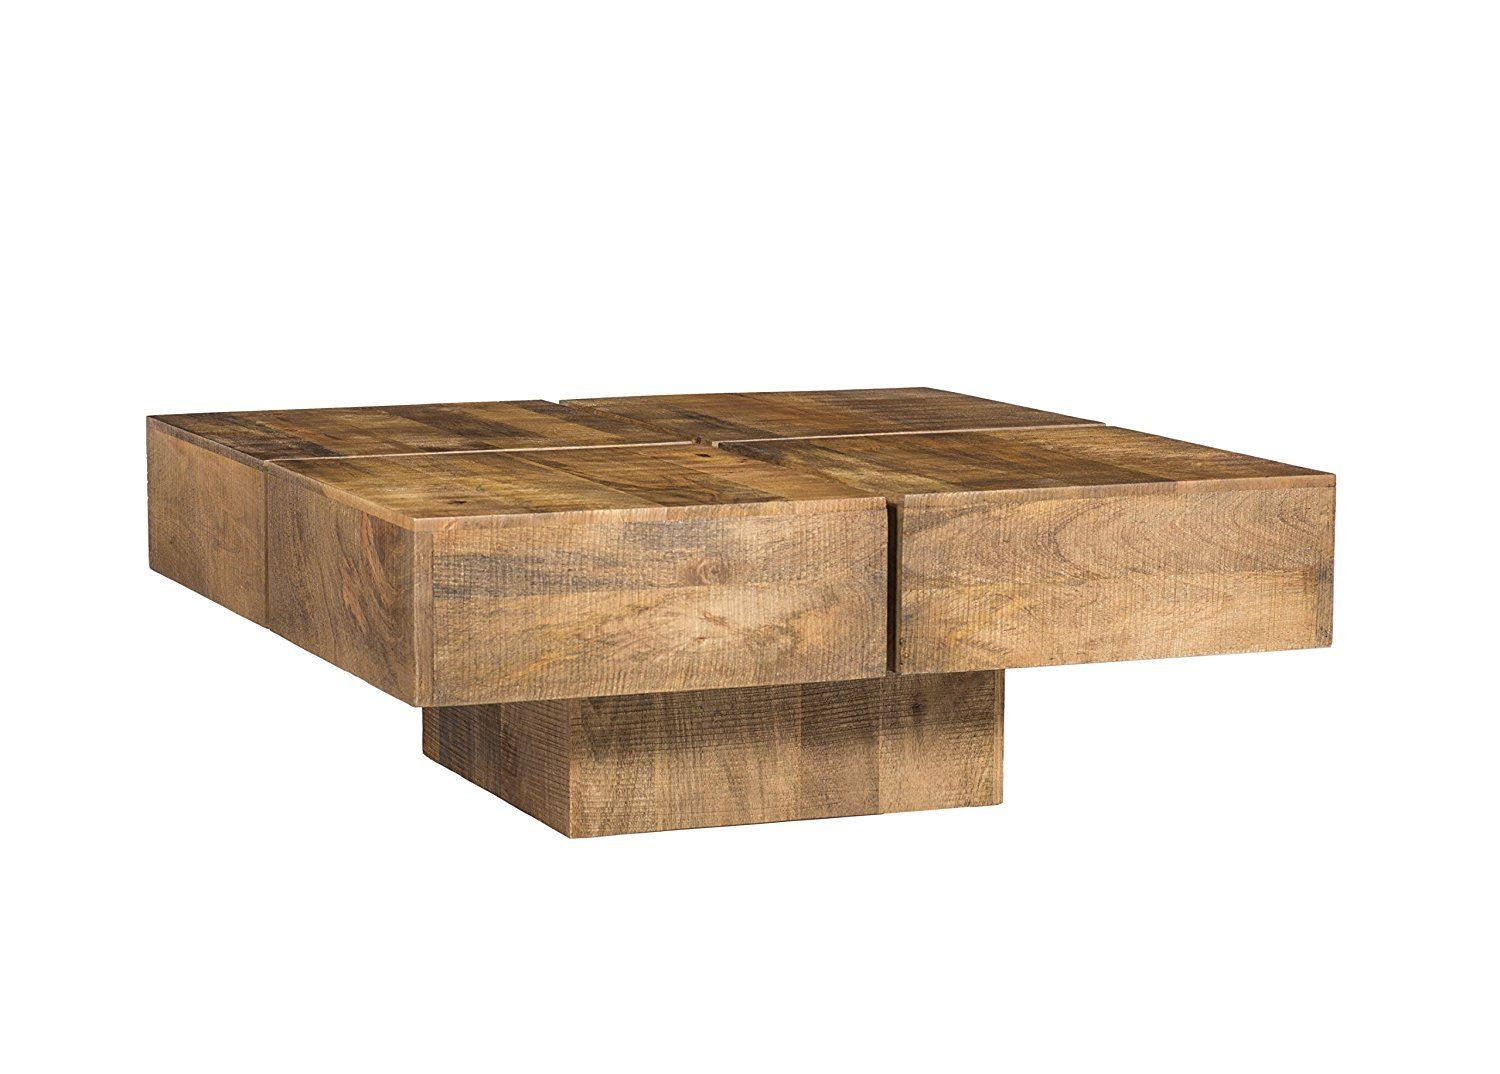 Woodkings® Couchtisch Amberley 80x80cm, Holz Mango natural rustic ...